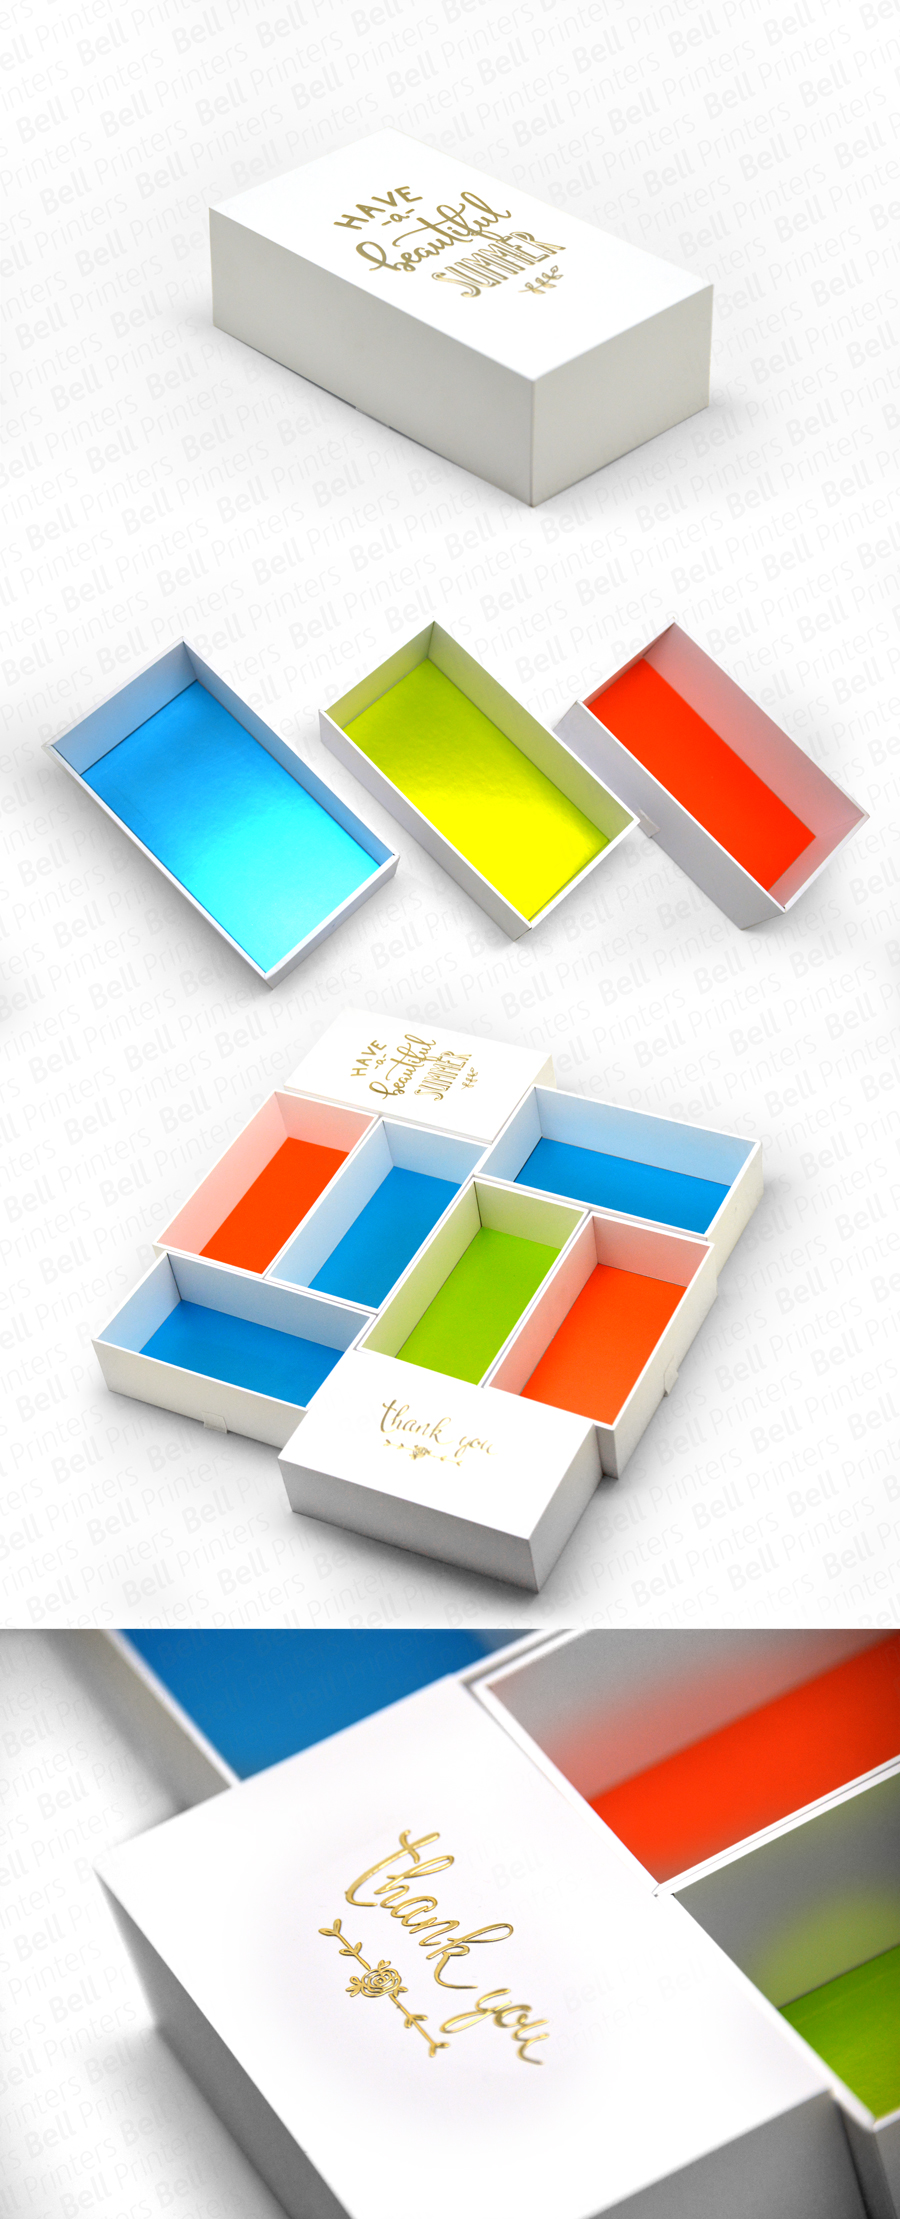 Luxury Packaging Boxes Supplier usa   Rigid box Manufacturer